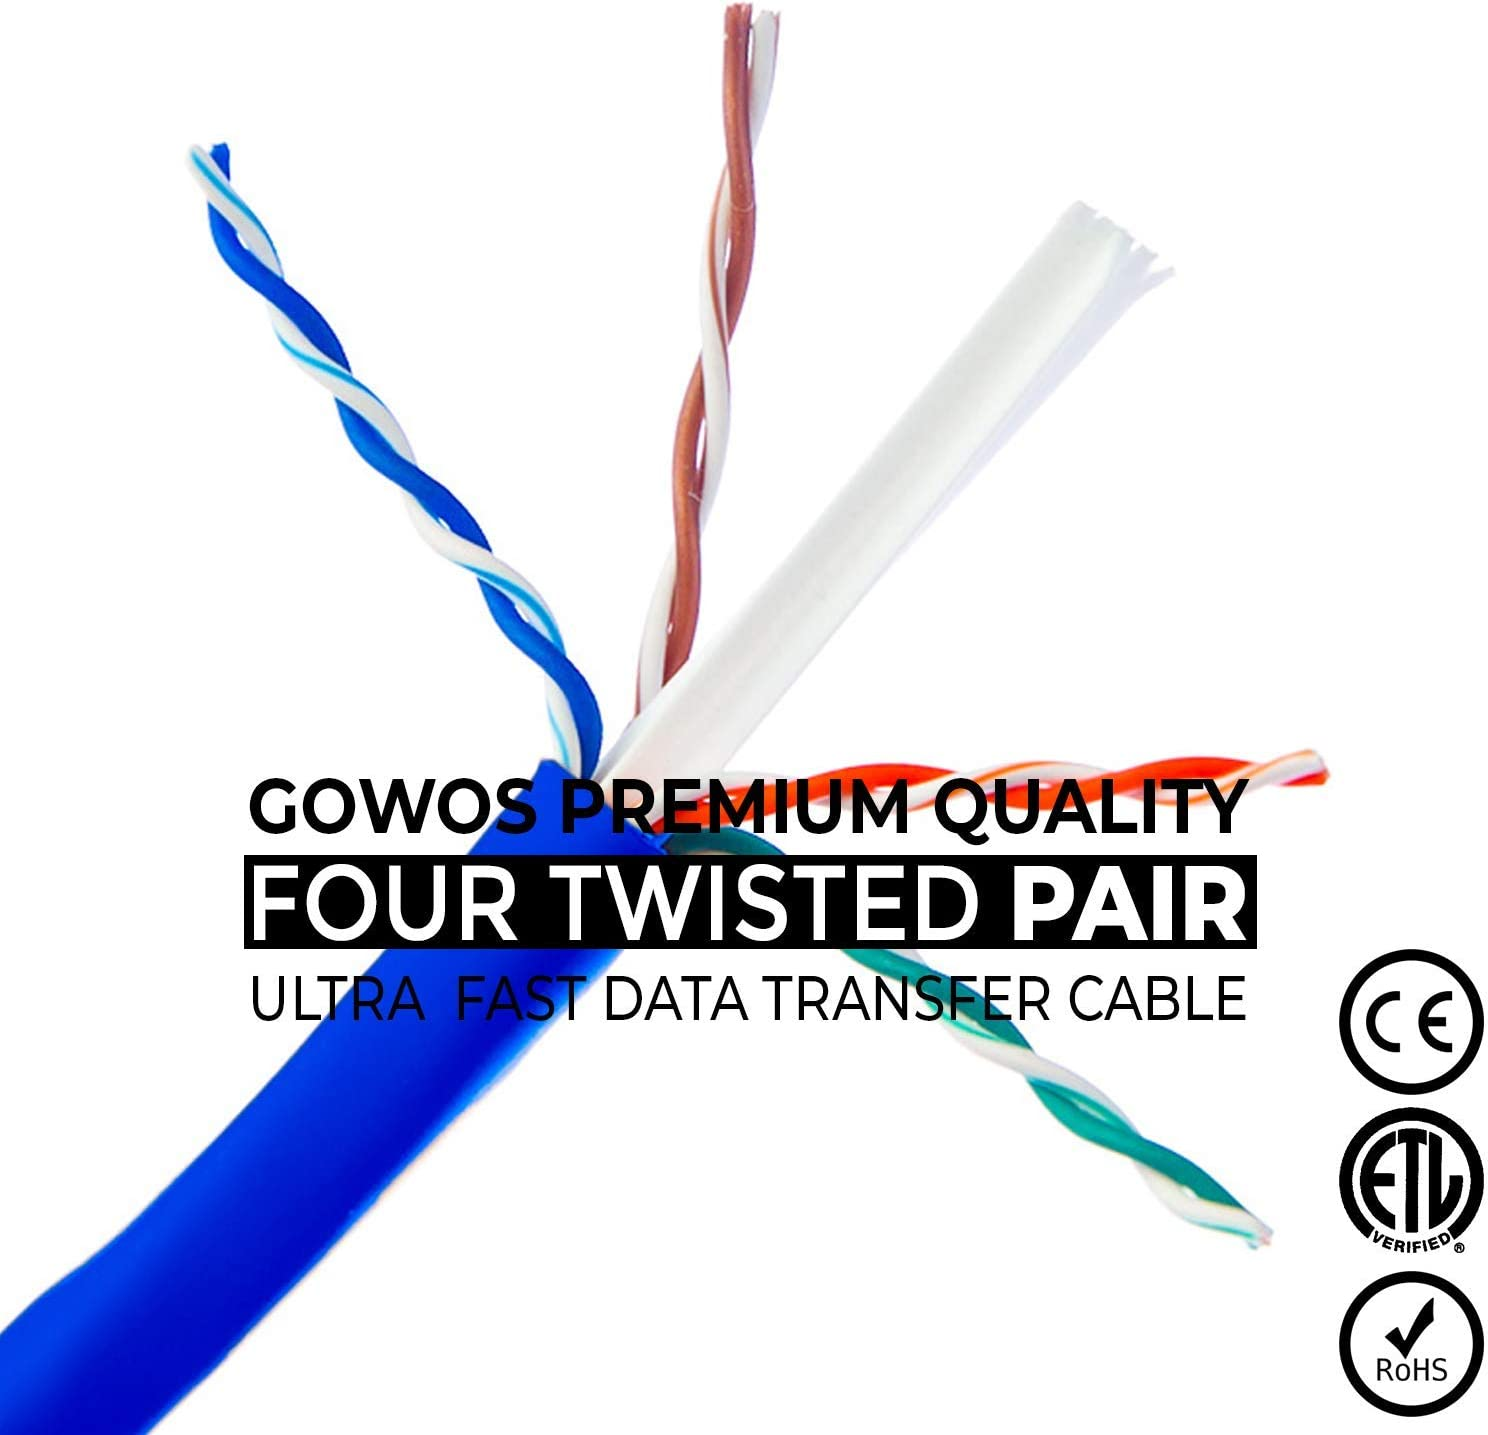 35 Feet - Gray Computer Network Cable with Snagless Connector RJ45 10Gbps High Speed LAN Internet Patch Cord Available in 28 Lengths and 10 Colors UTP Cat6 Ethernet Cable GOWOS 5-Pack